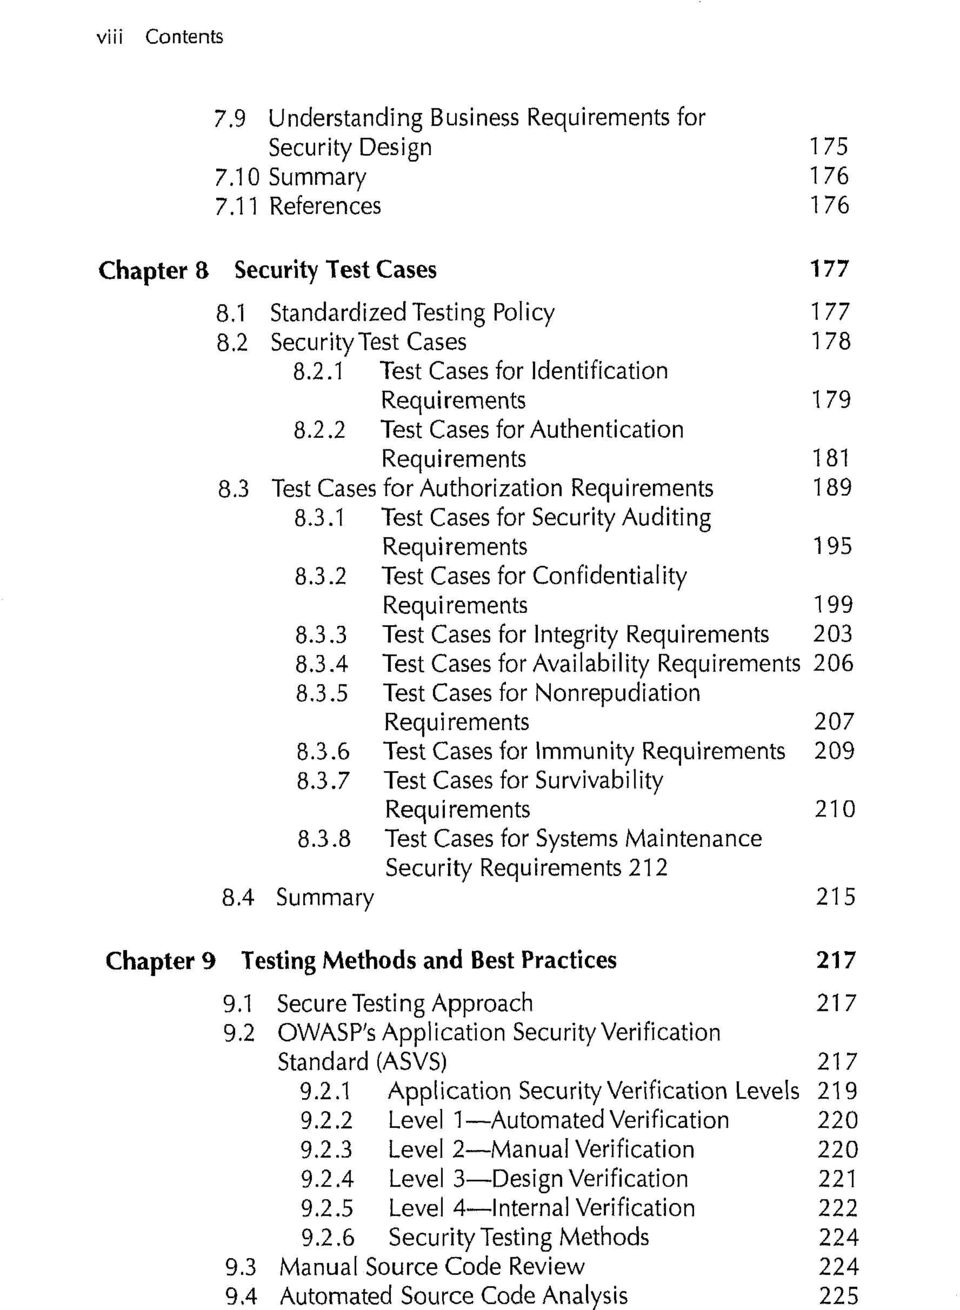 3.2 Test Cases for Confidentiality Requirements 199 8.3.3 Test Cases for Integrity Requirements 203 8.3.4 Test Cases for Availability Requirements 206 8.3.5 Test Cases for Nonrepudiation Requirements 207 8.